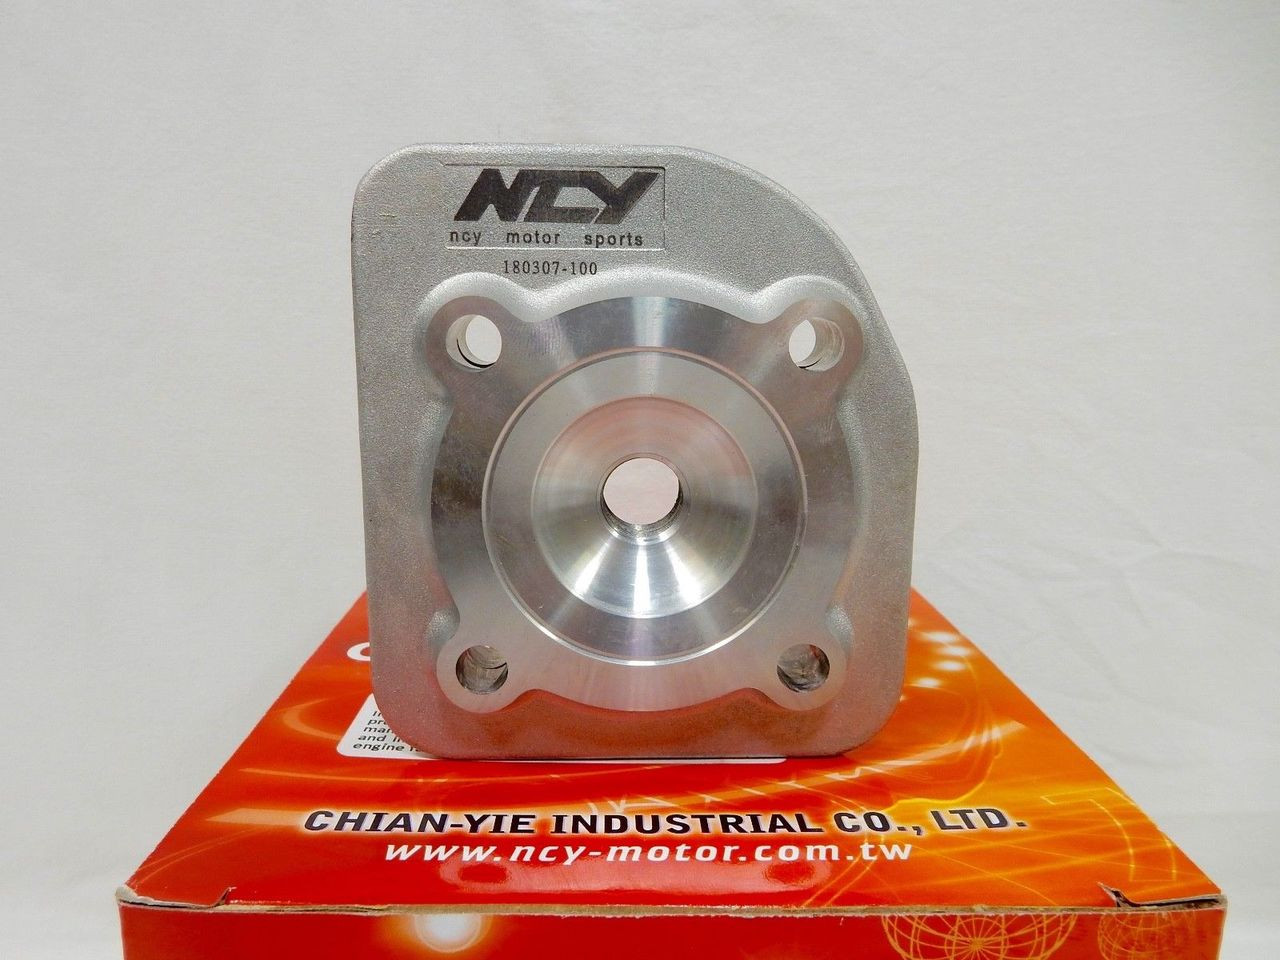 NCY 72cc CYLINDER BIG BORE KIT (10mm WRIST PIN) JOG MINARELLI HORIZONTAL